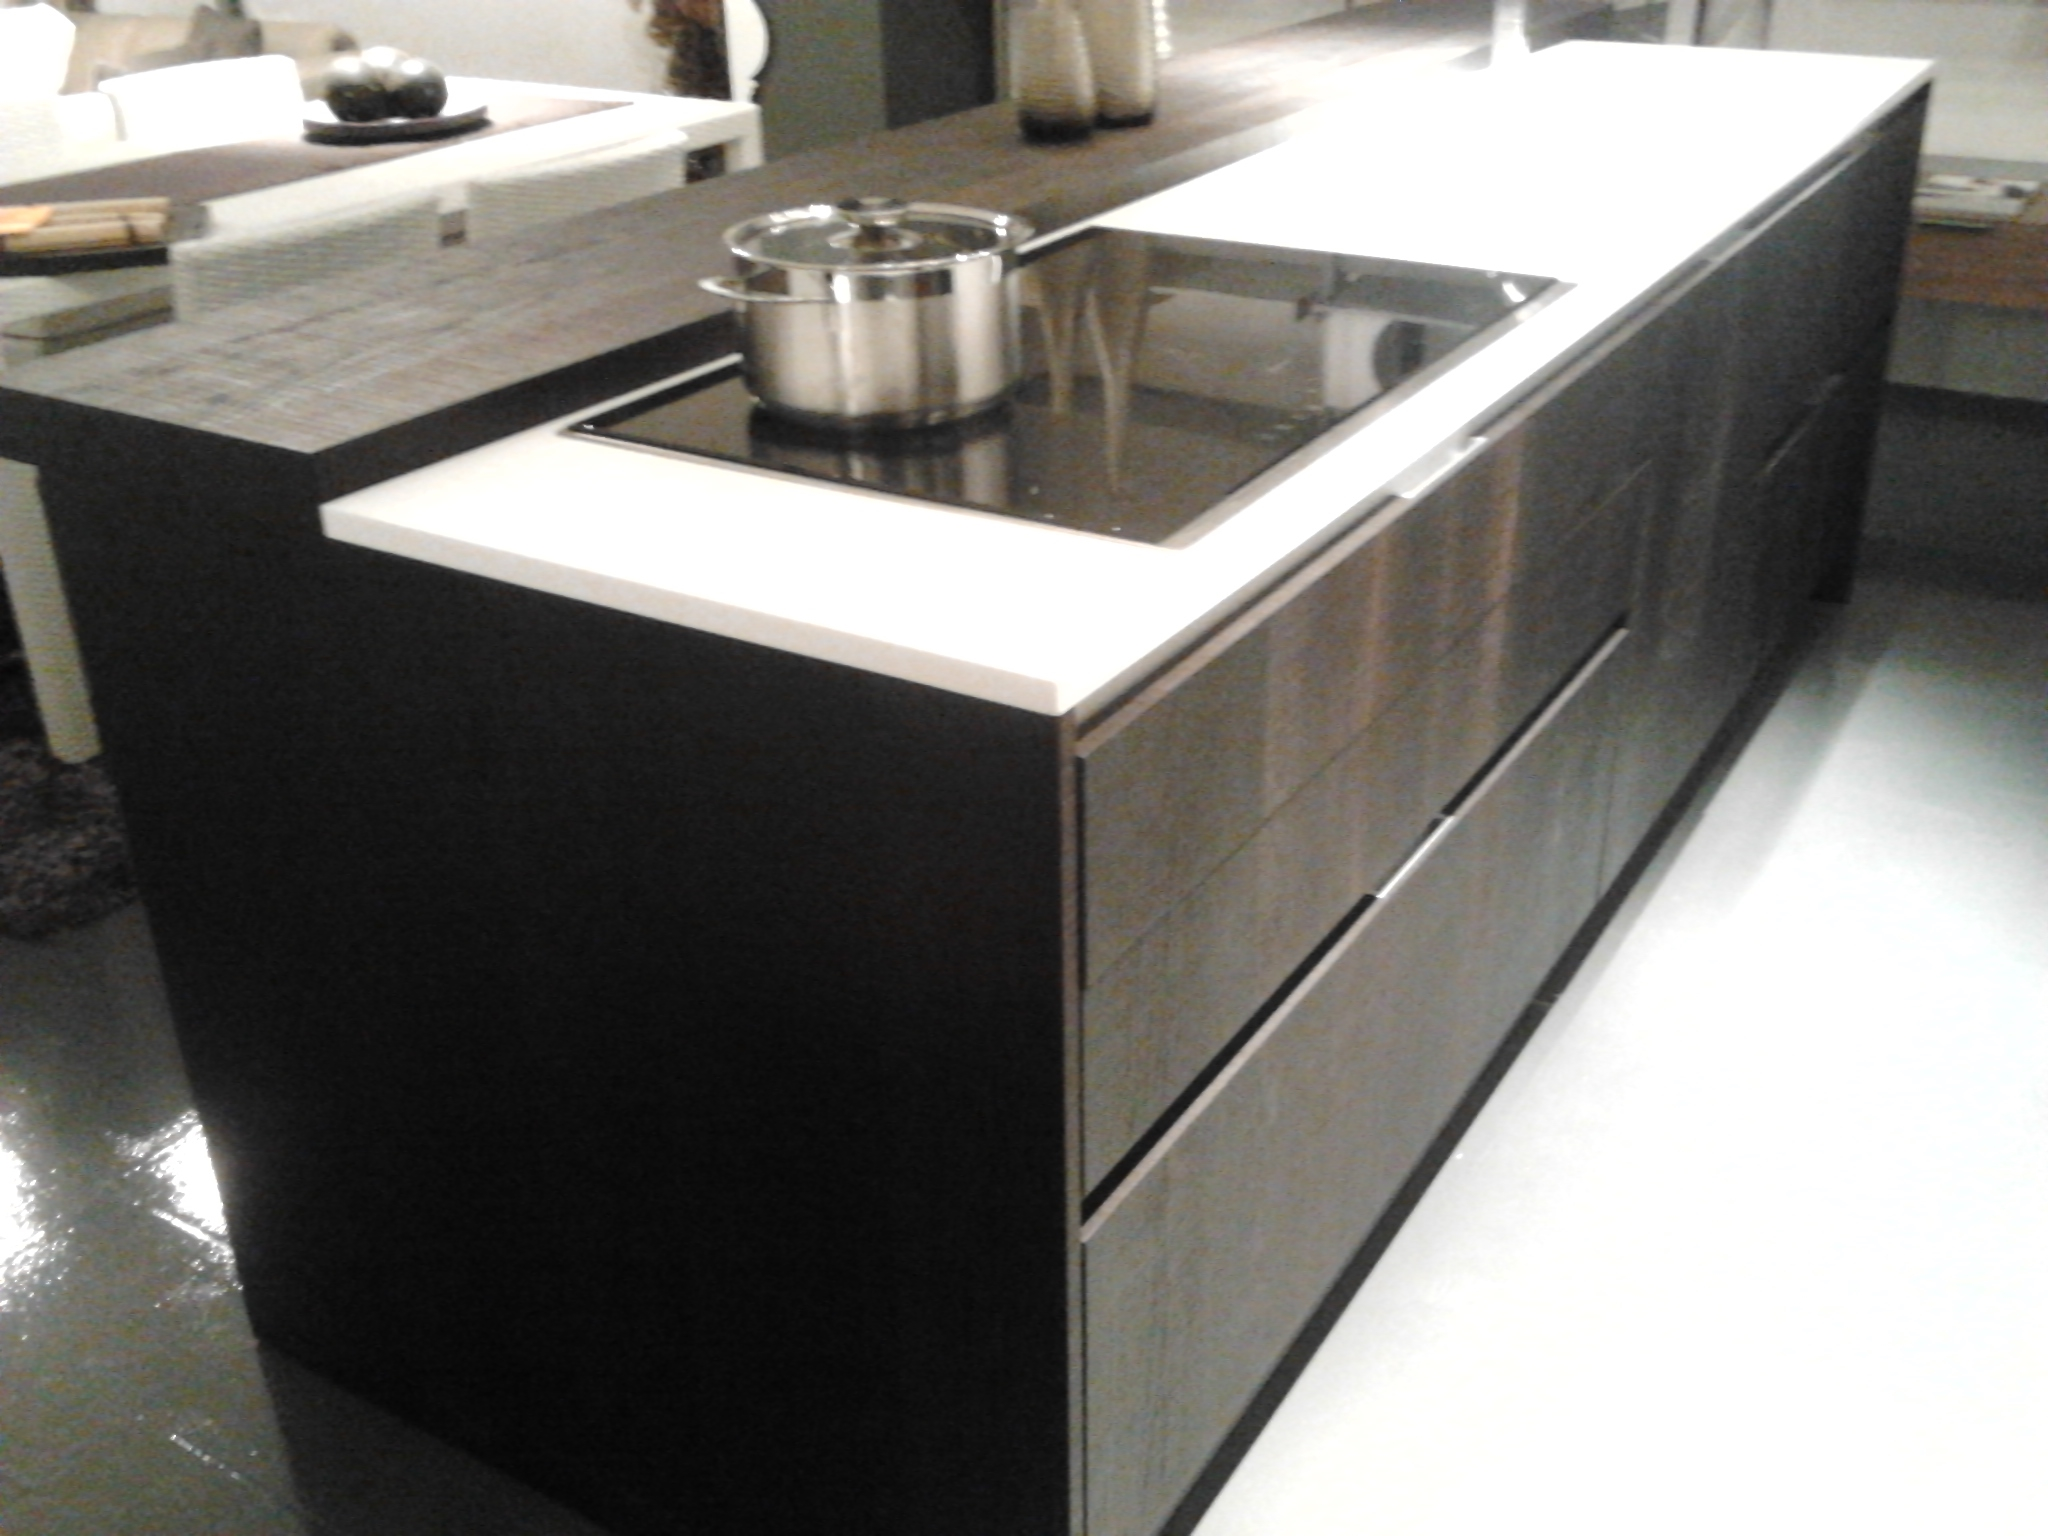 Best Lavello Angolo Cucina Pictures - Skilifts.us - skilifts.us